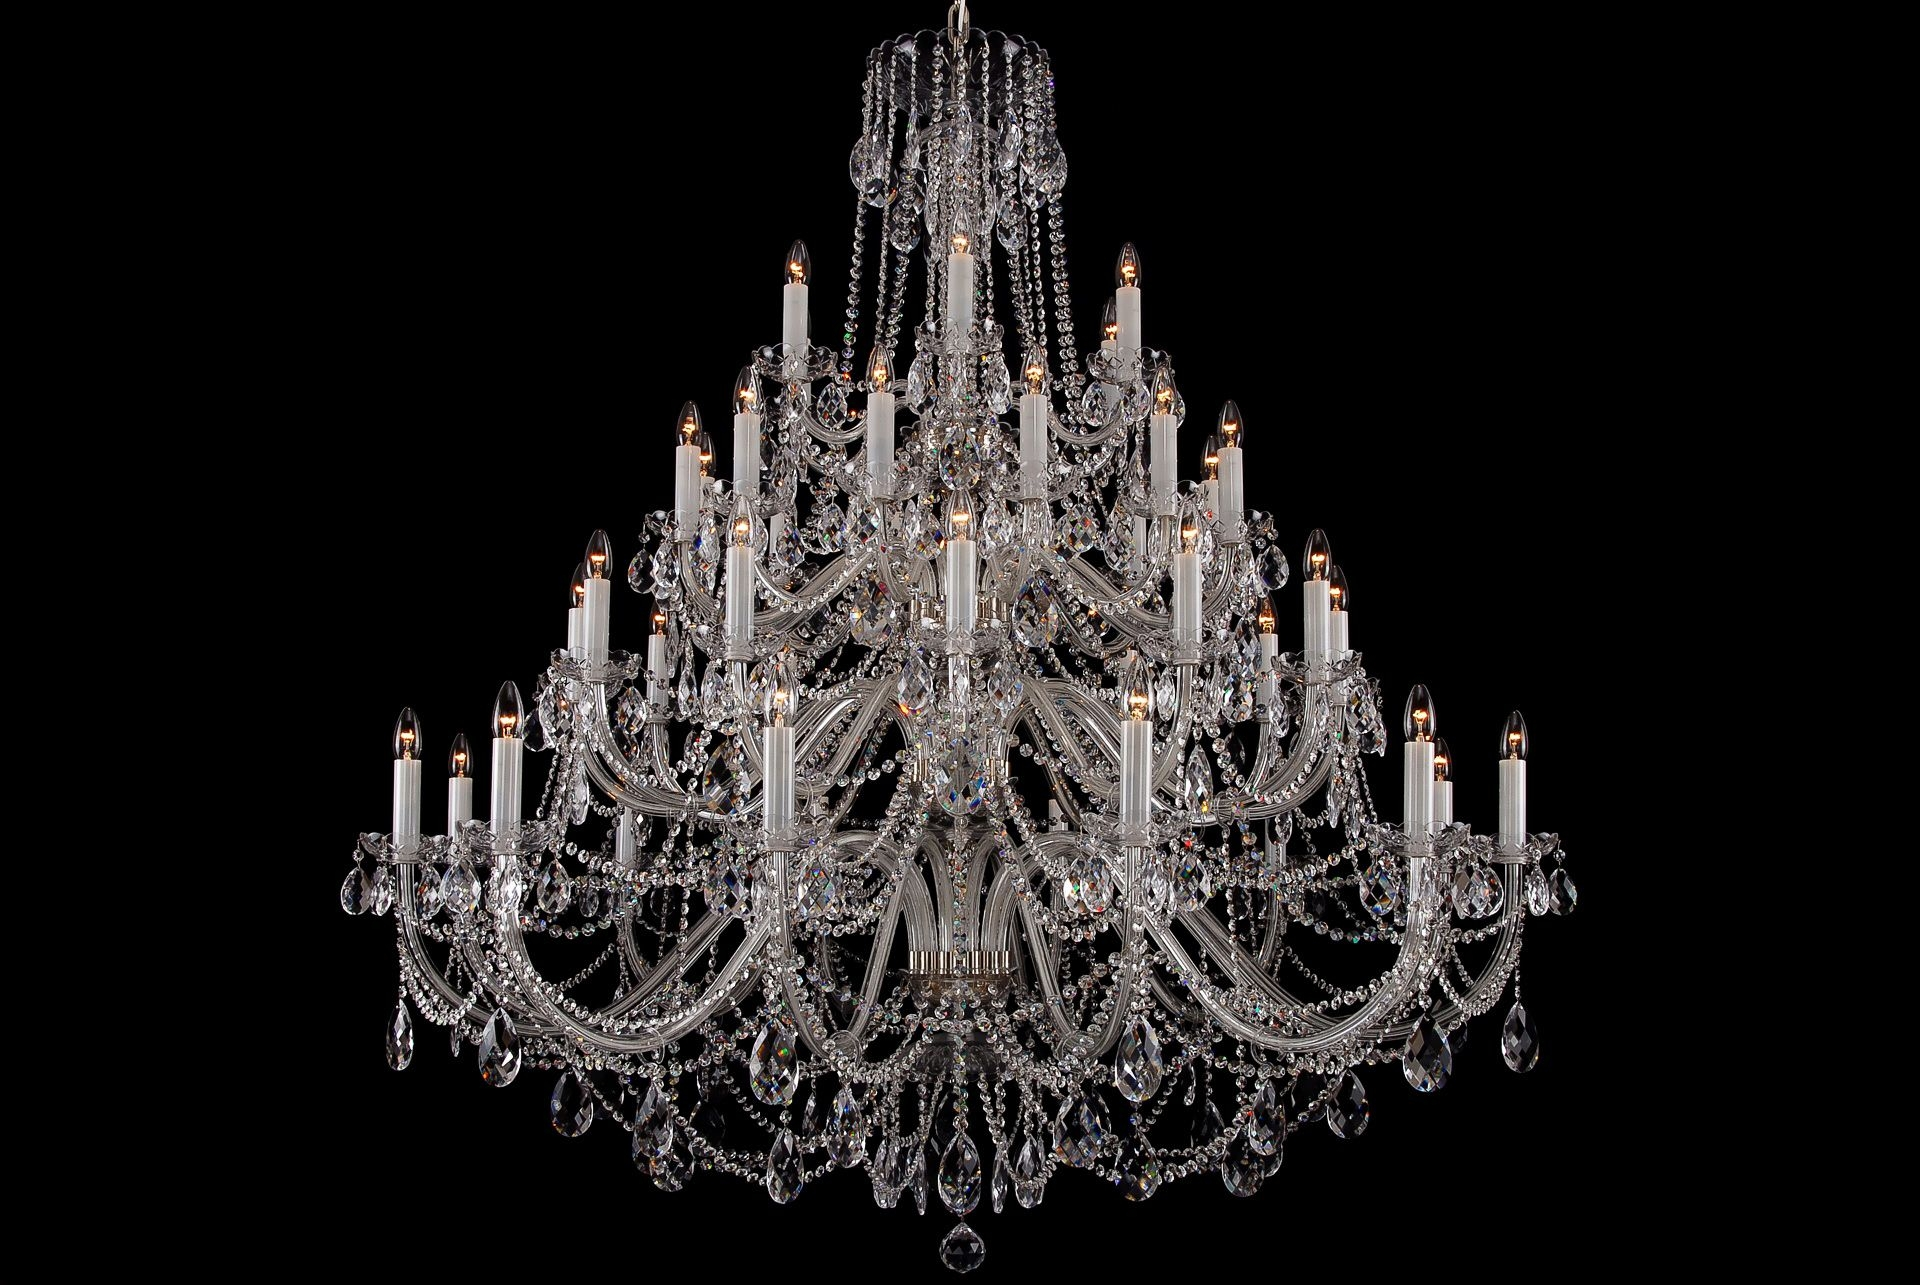 Chandelier Stunning Big Crystalandelier Picture Ideas Stock Photo Pertaining To Crystal 5